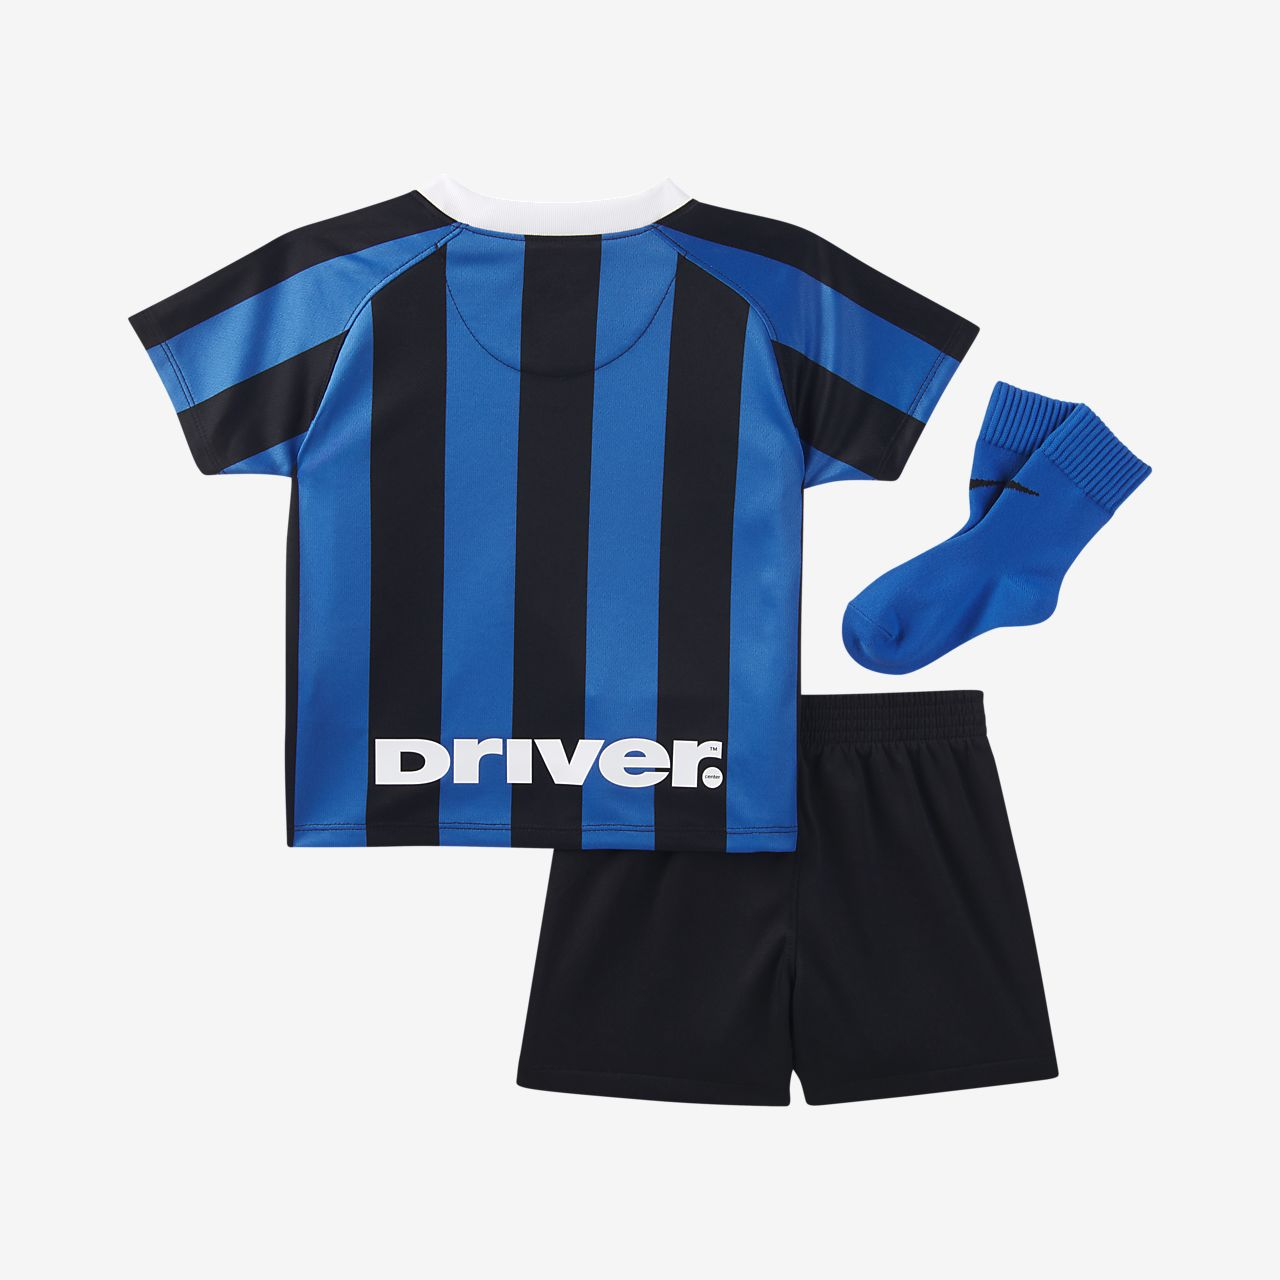 new arrival f728d 75fec Inter Milan 2019/20 Home Baby and Toddler Football Kit